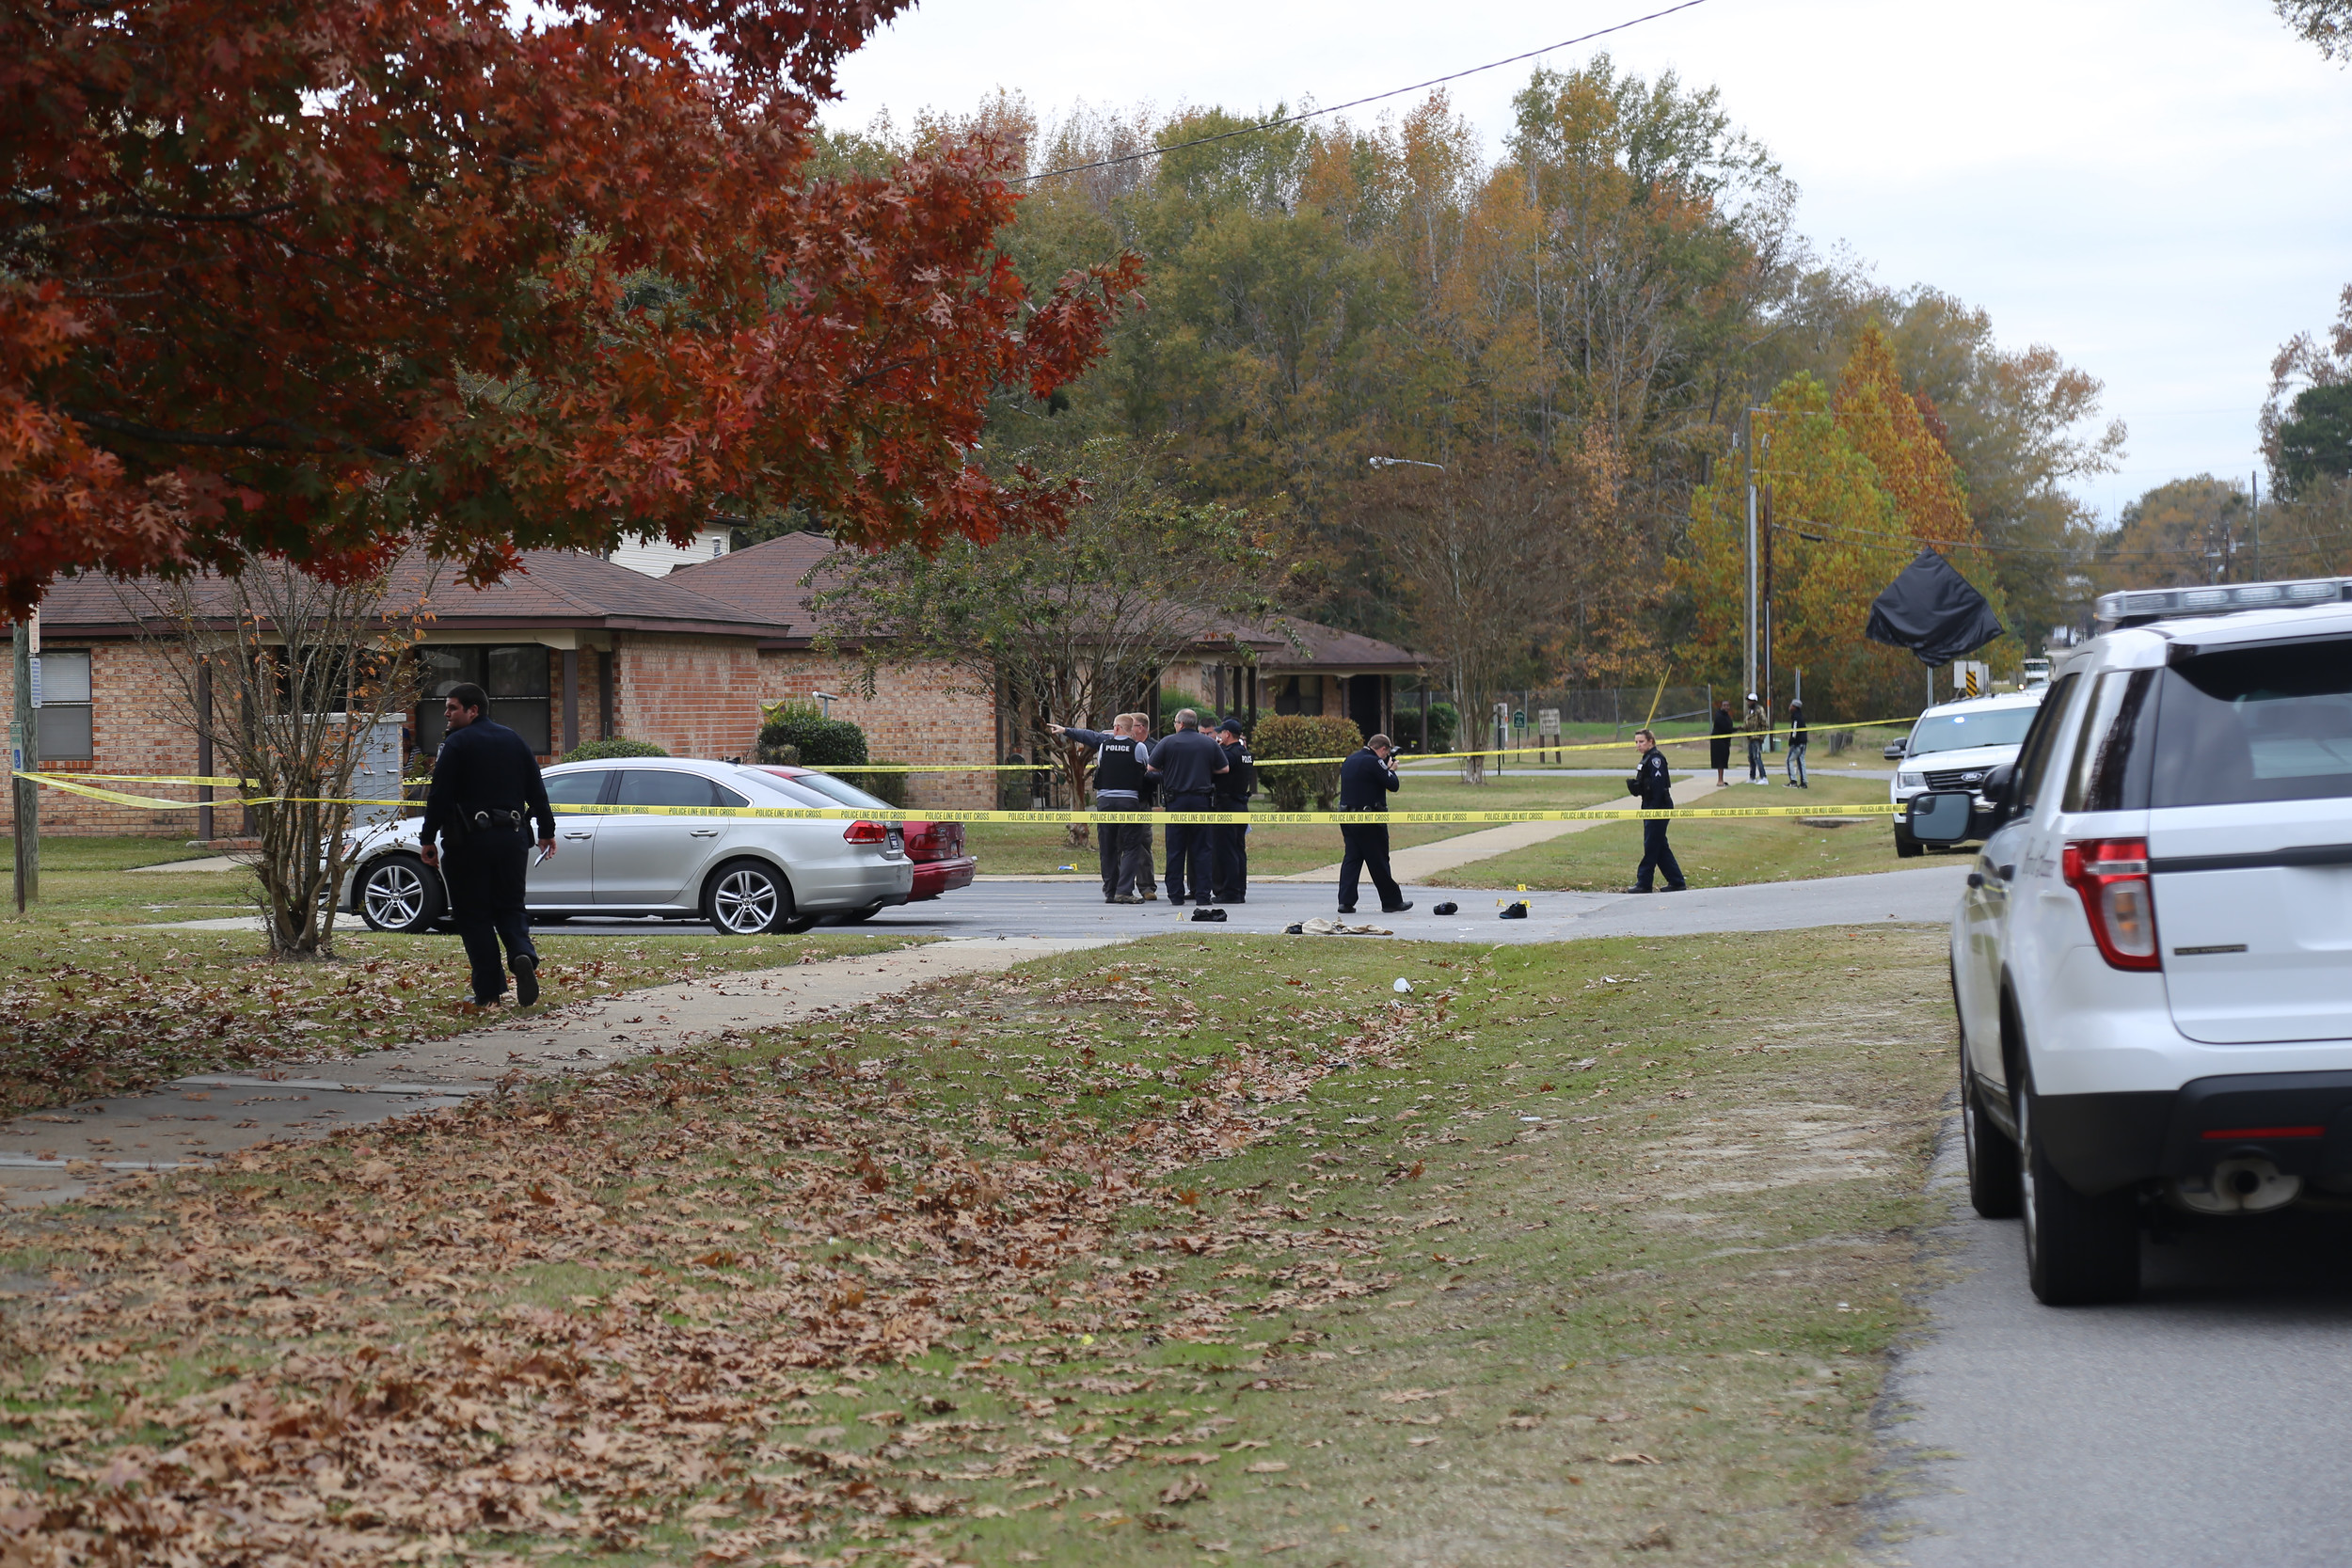 This was the scene of a shooting Tuesday afternoon that involved a male teen being airlifted to a hospital.